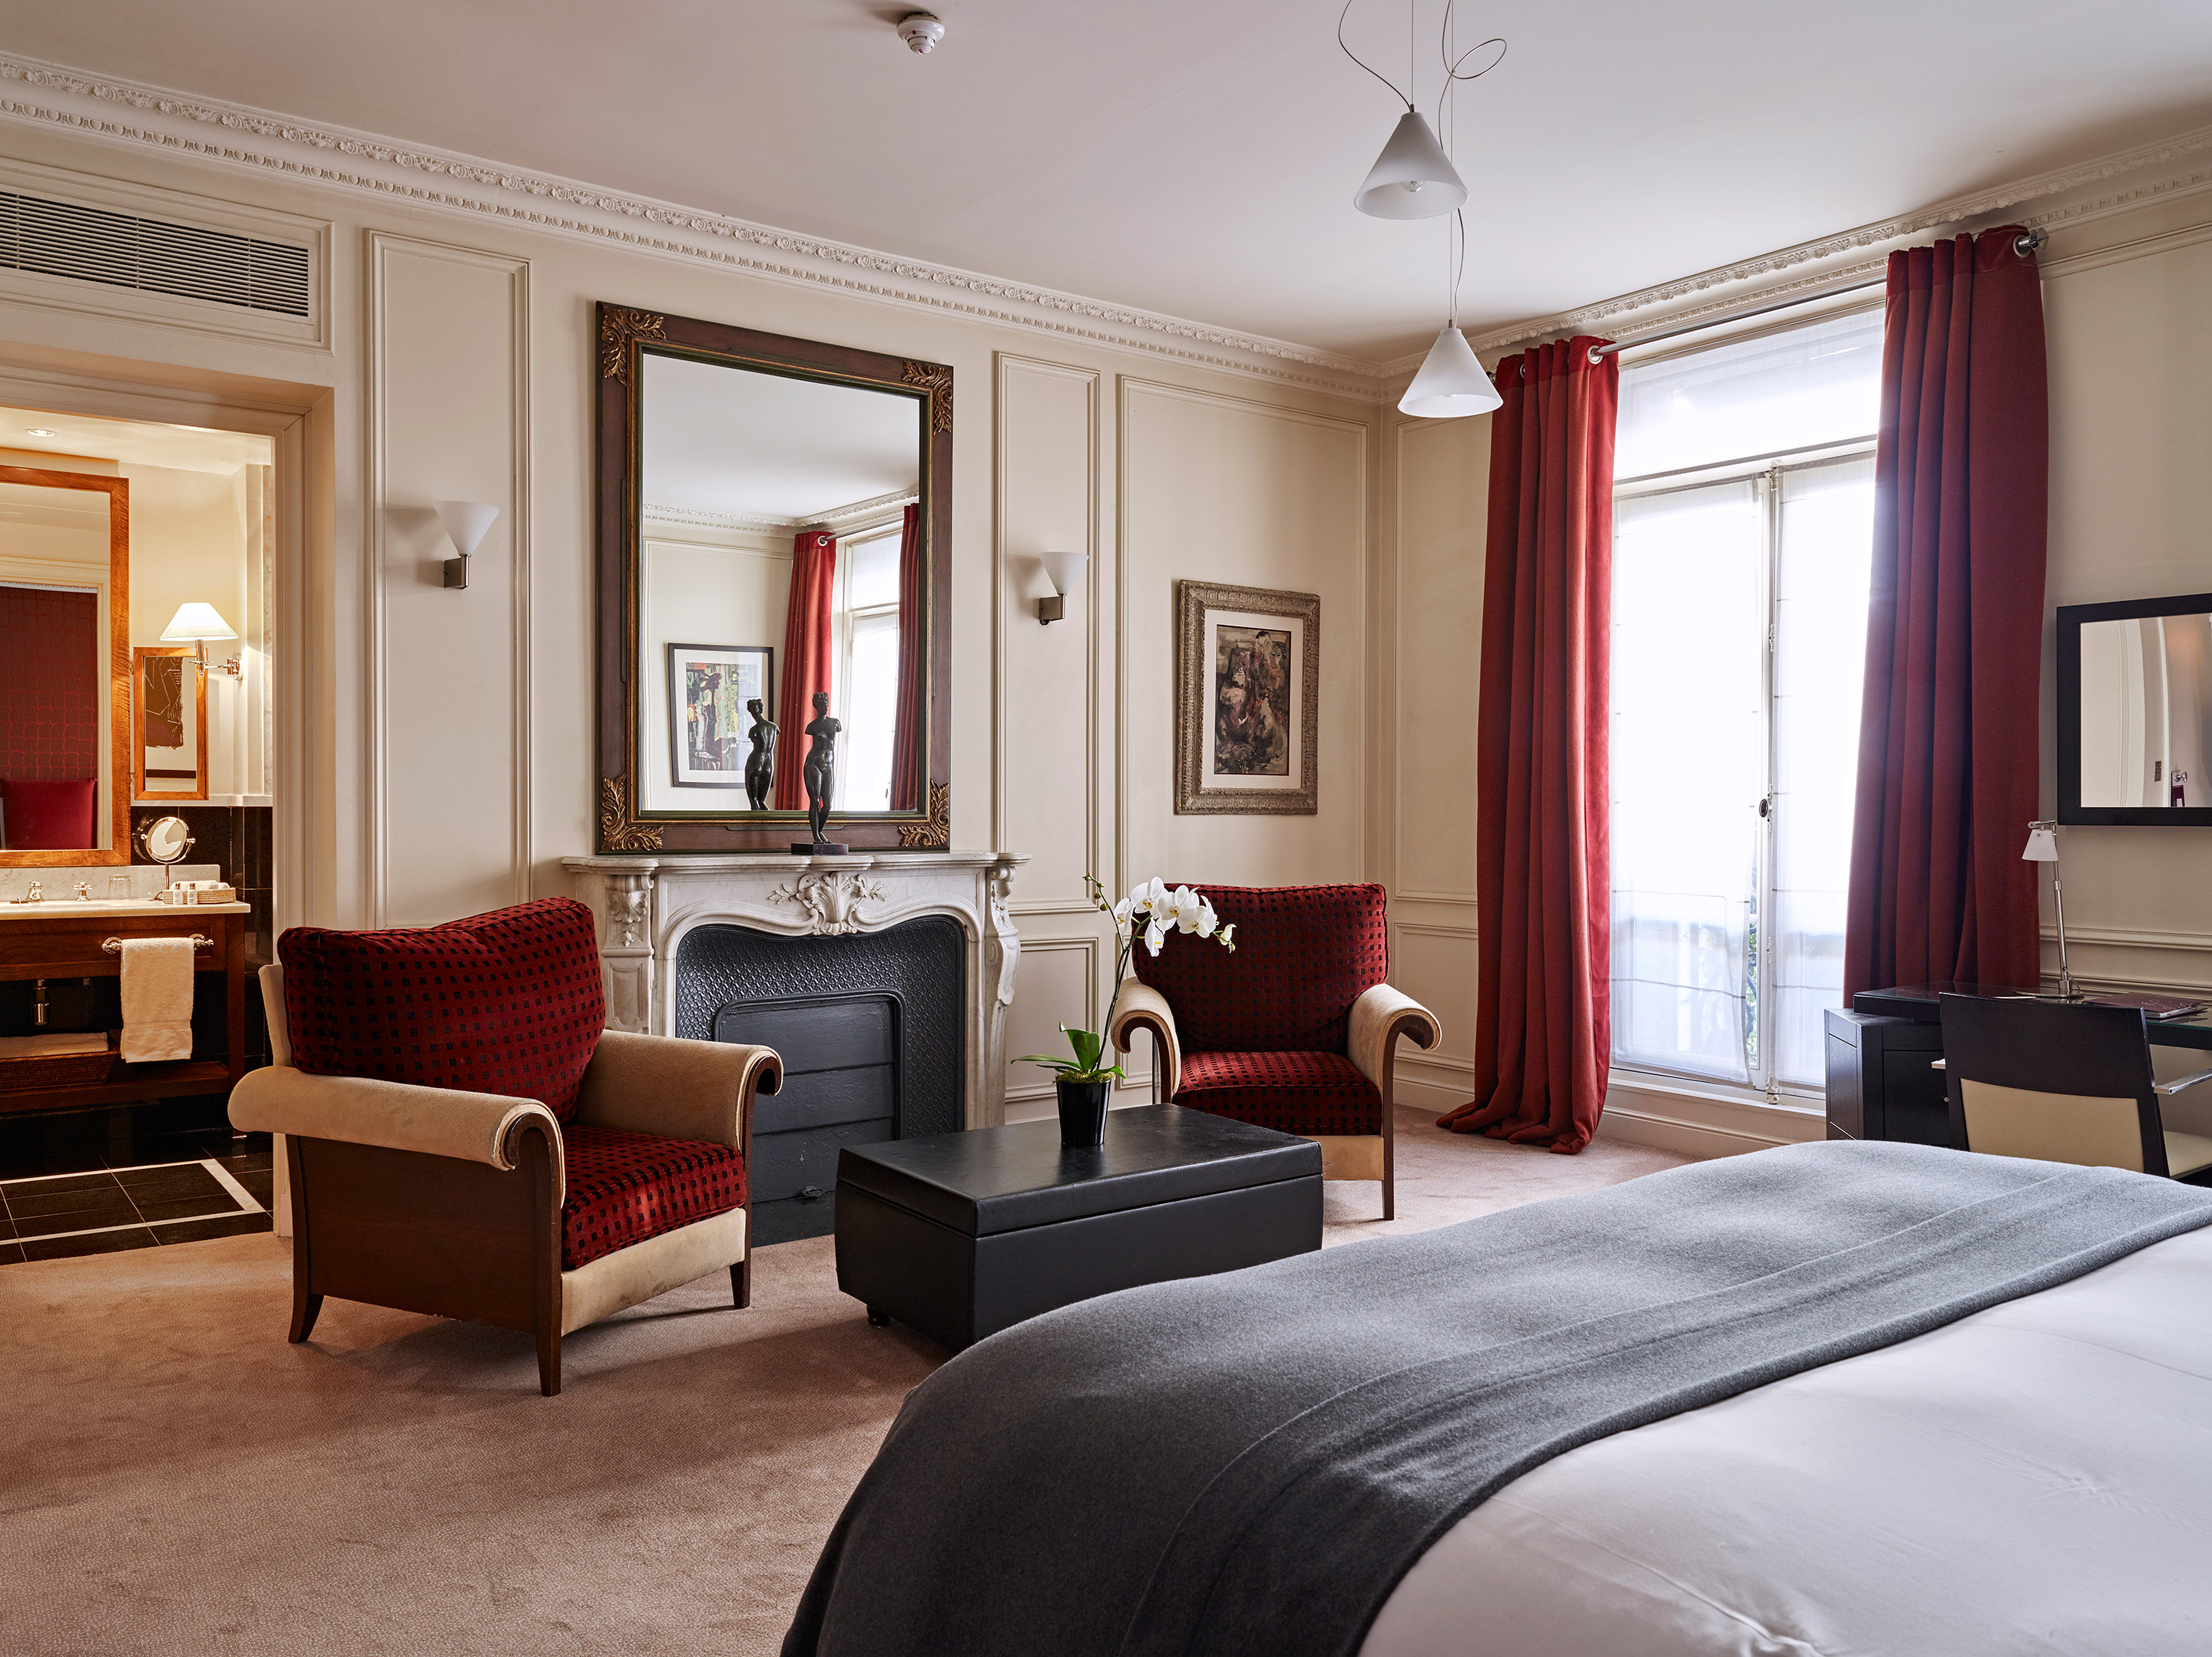 Chambre Double Deluxe. Image